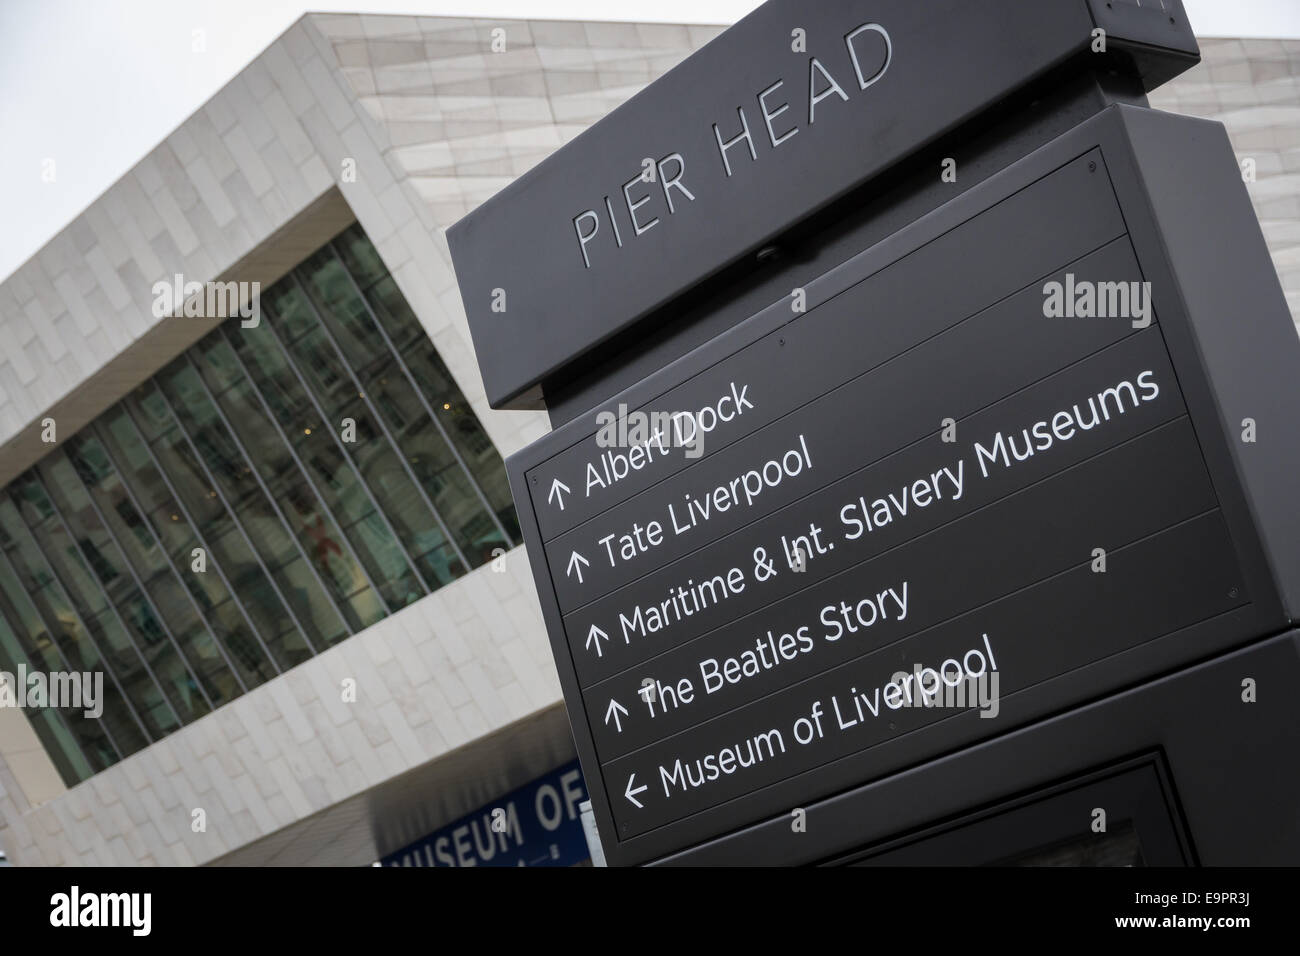 Wayfinding signage at Pier Head in Liverpool with the Museum of Liverpool in the background. - Stock Image